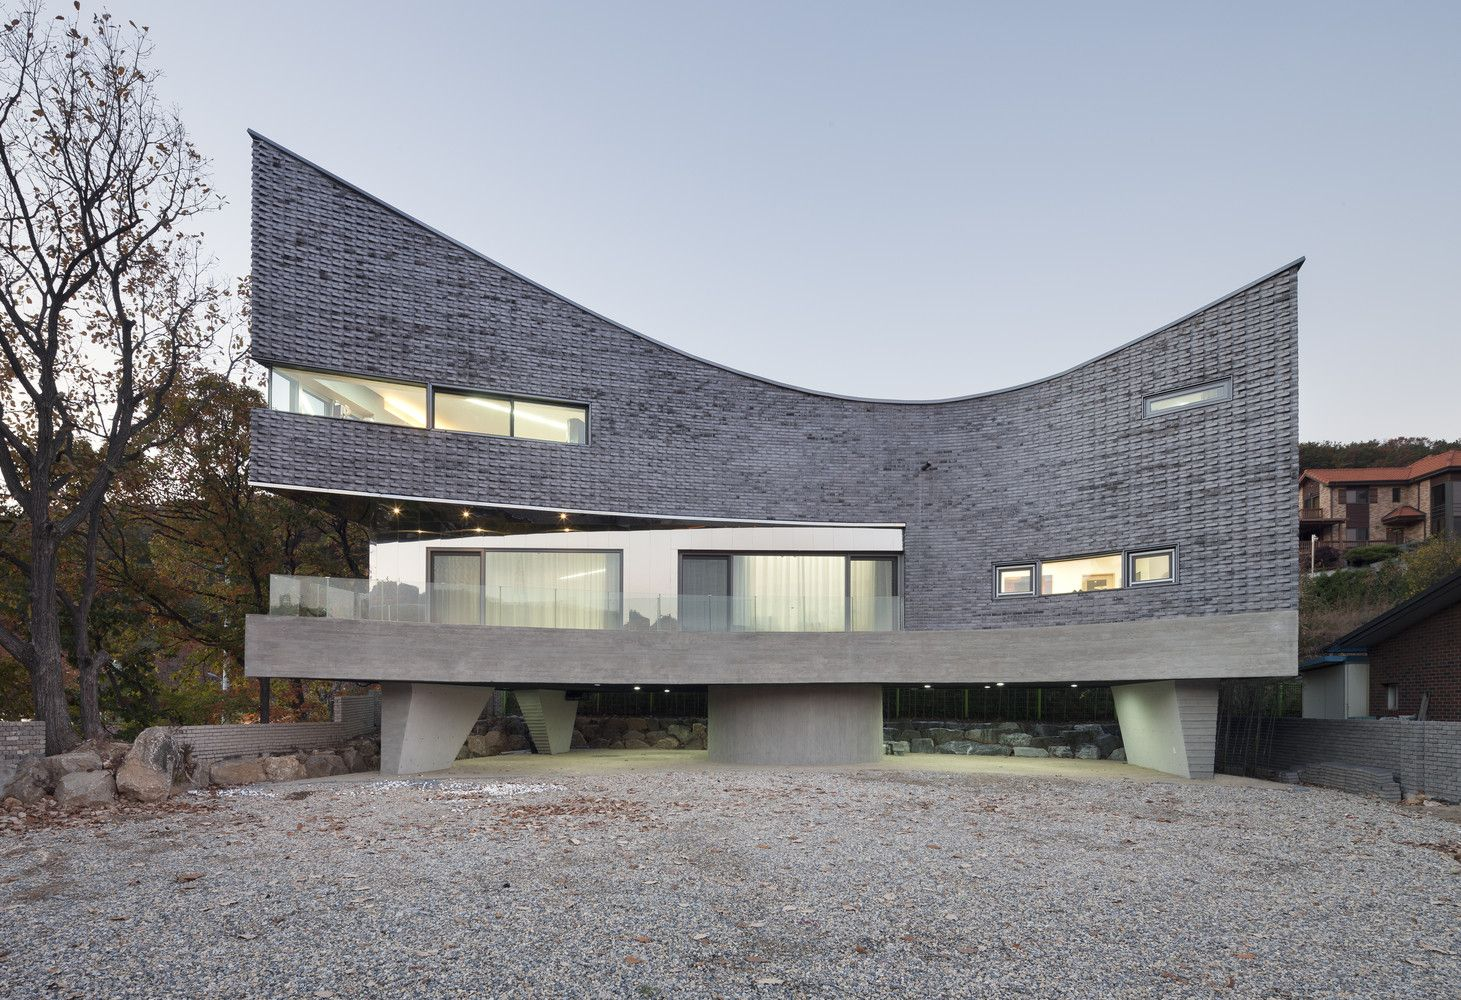 Gallery of the curving house joho architecture 1